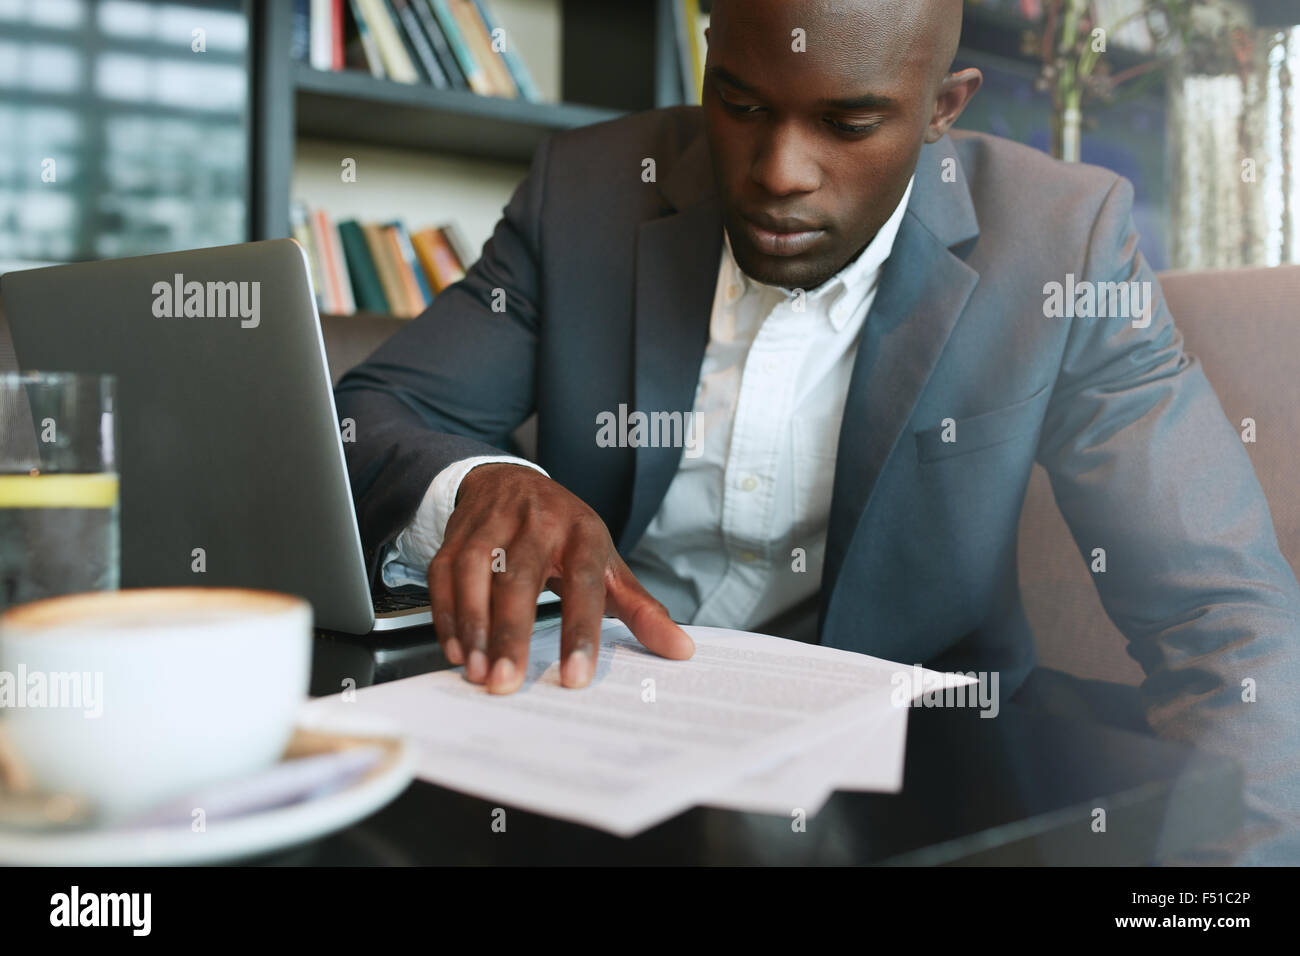 Businessman in a coffee shop reading a contract document. African business executive sitting at cafe working. - Stock Image